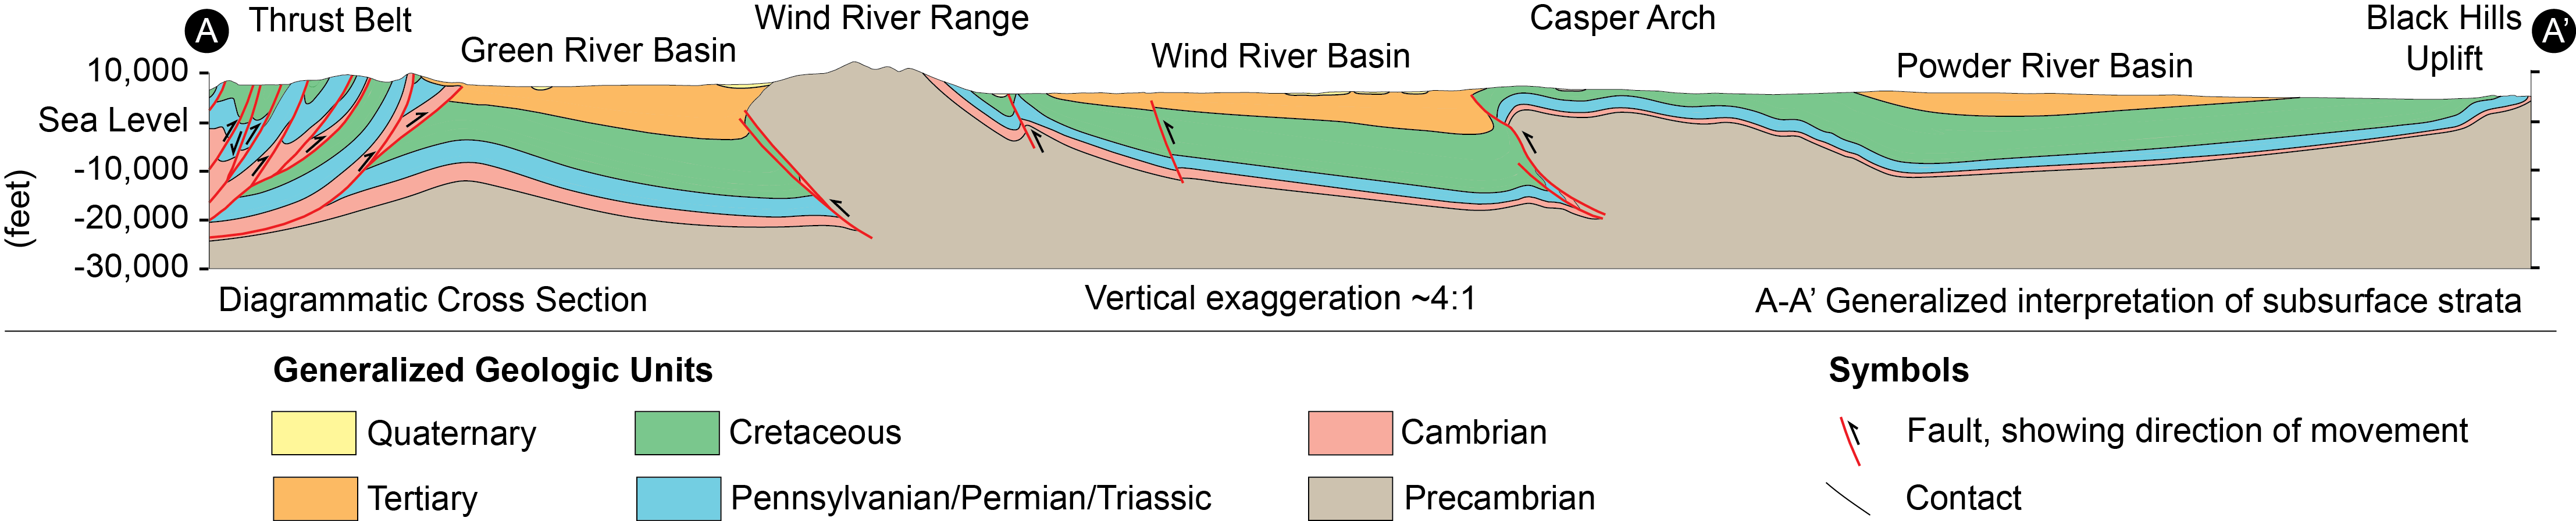 Generalized Wyoming cross section